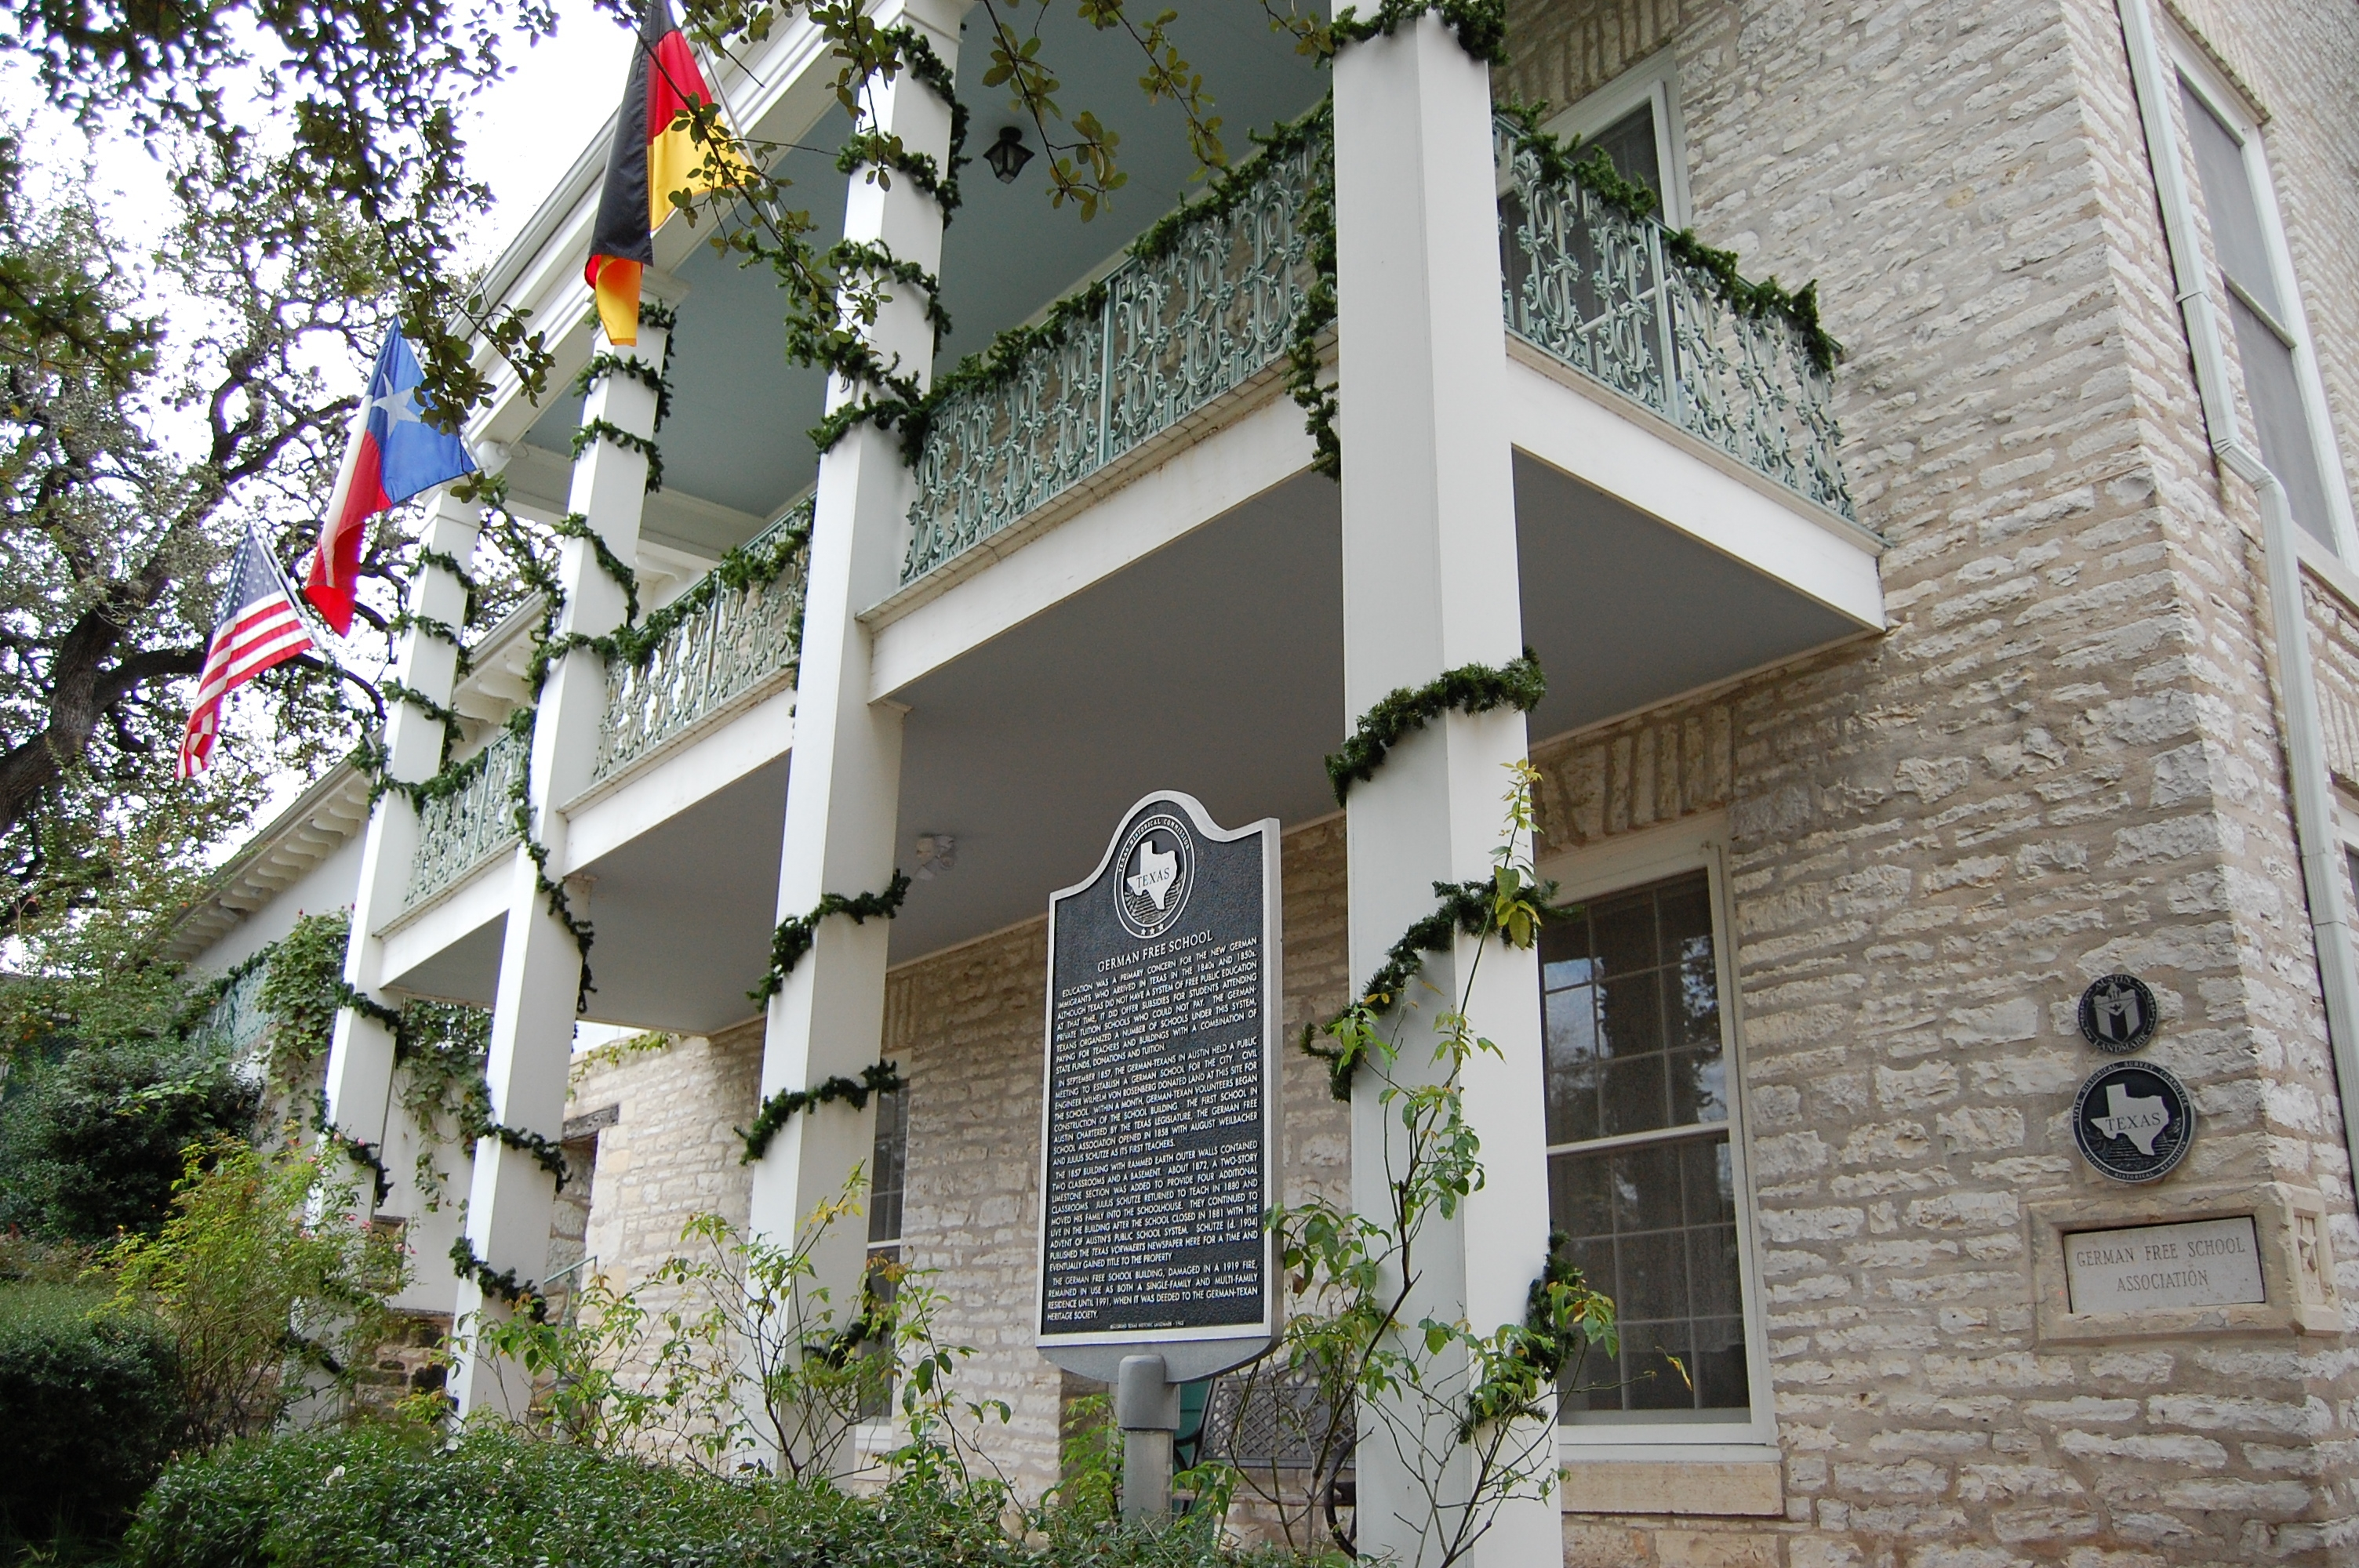 The German-Texan Heritage Society is housed in a German Free School built in 1858 for German immigrants. Image obtained from Wikimedia Commons.